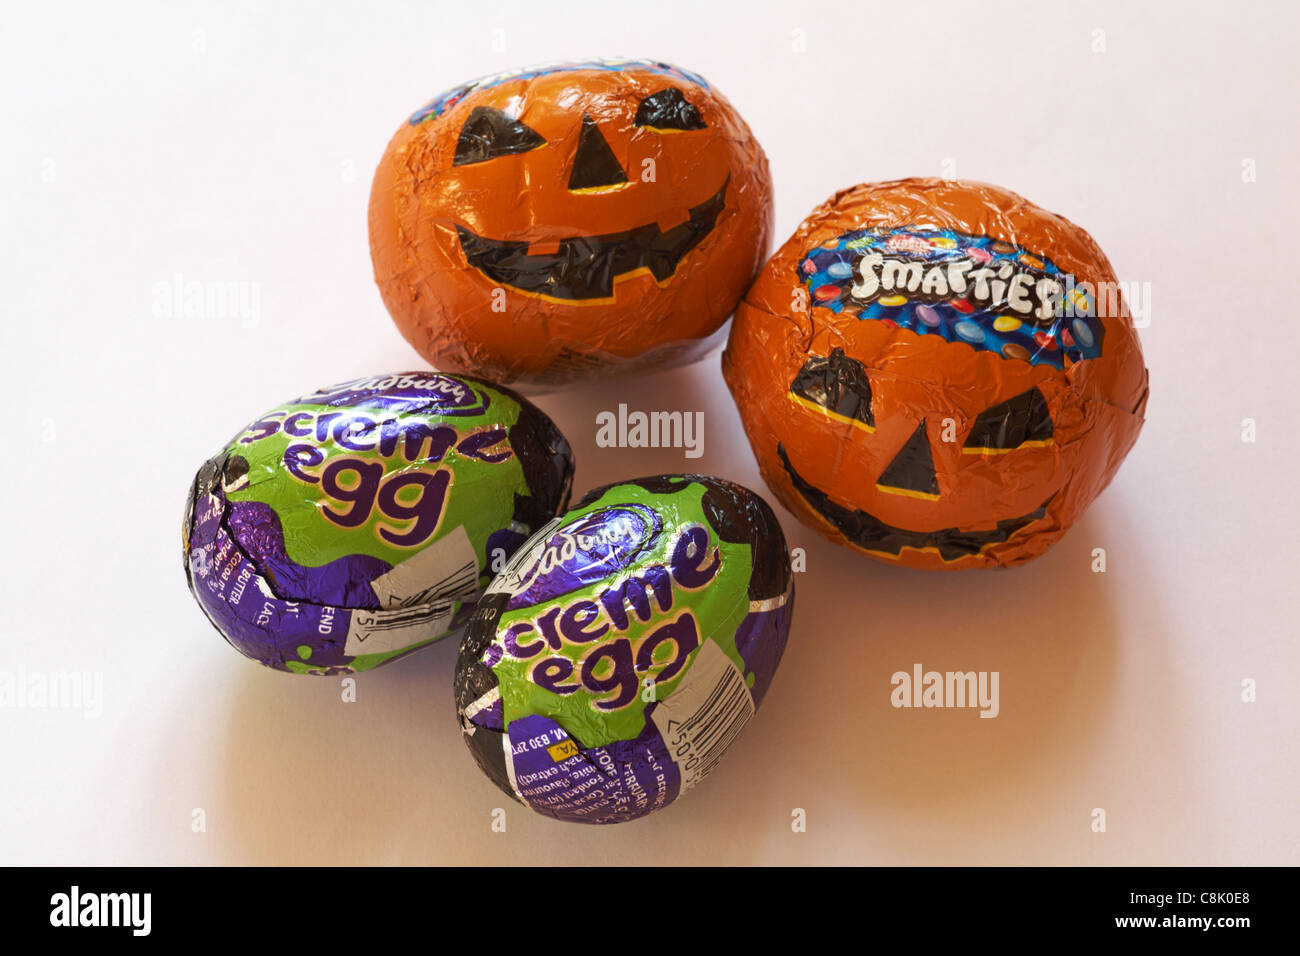 Halloween chocolates - two Cadbury screme eggs, screme egg, and two smarties pumpkin faces isolated on white background - Stock Image